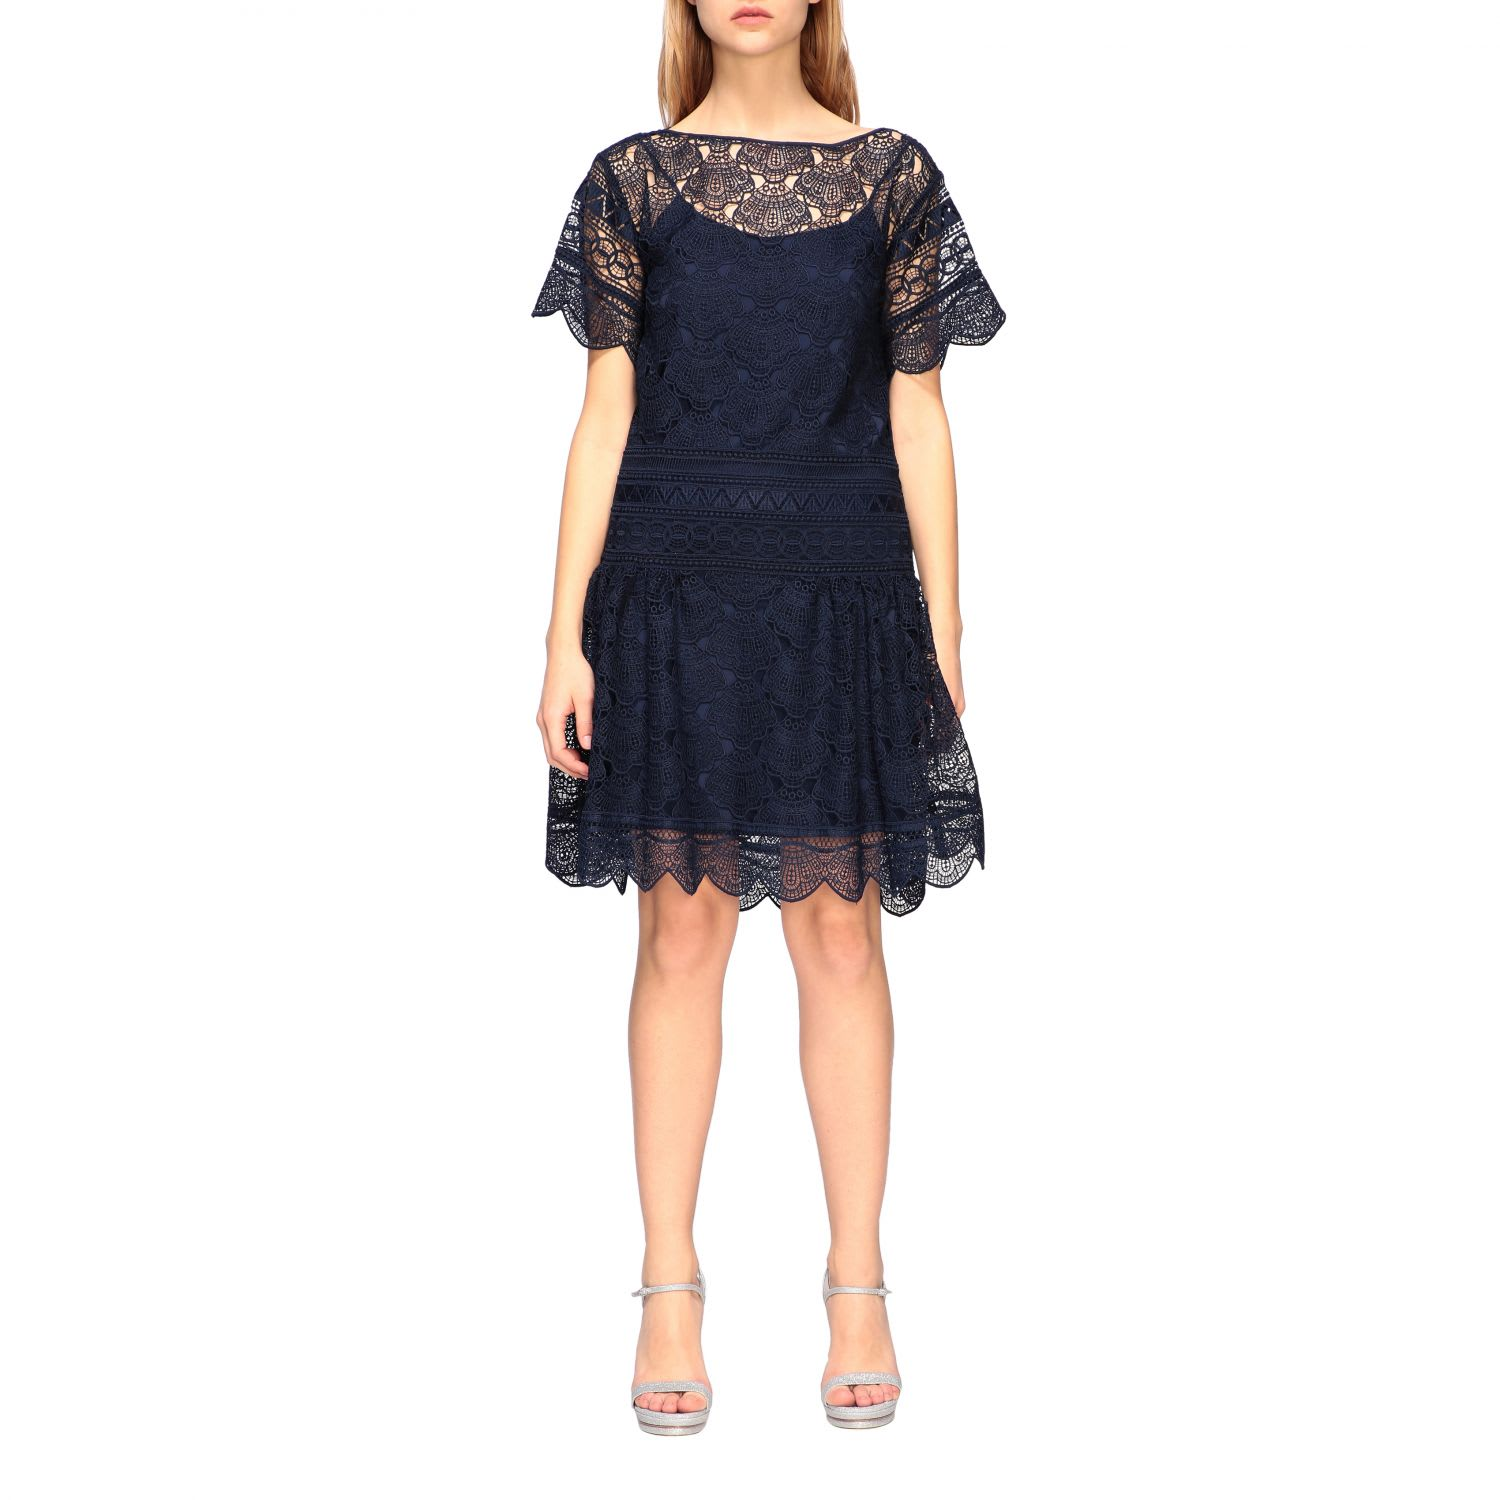 Buy Alberta Ferretti Dress Alberta Ferretti Short Macramé Dress online, shop Alberta Ferretti with free shipping